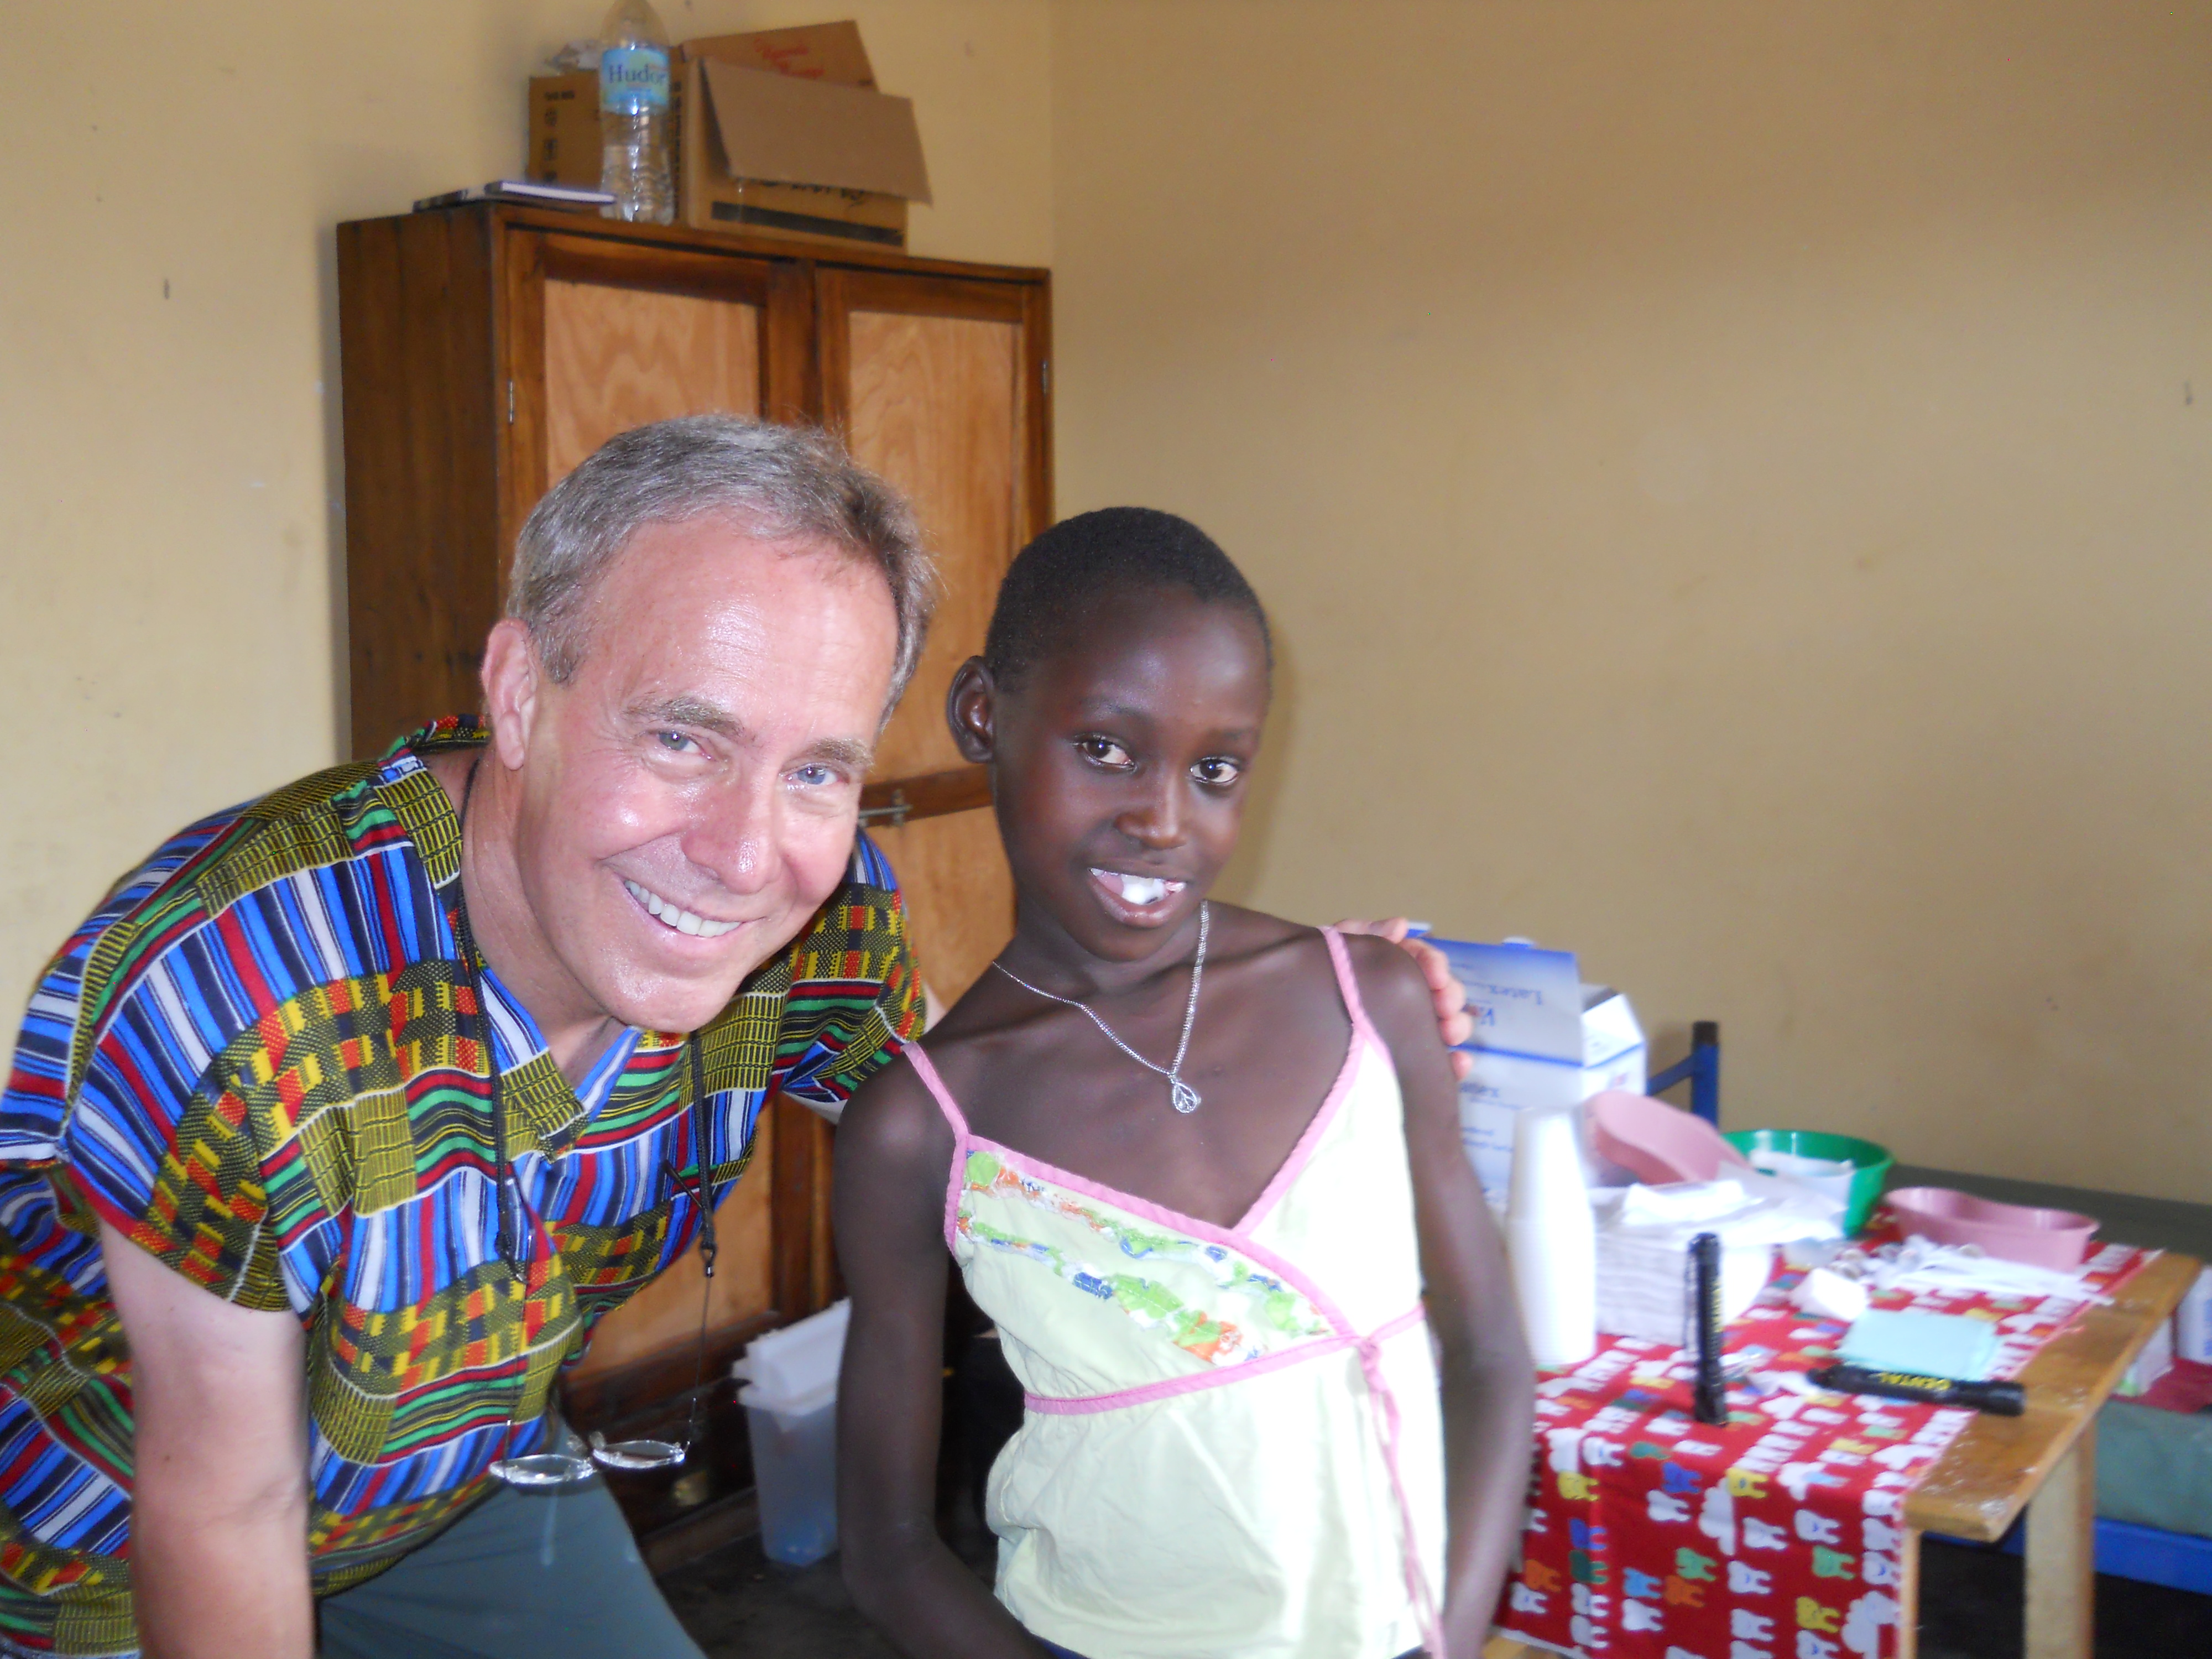 Dr. Hovick with a patient on one of his missions